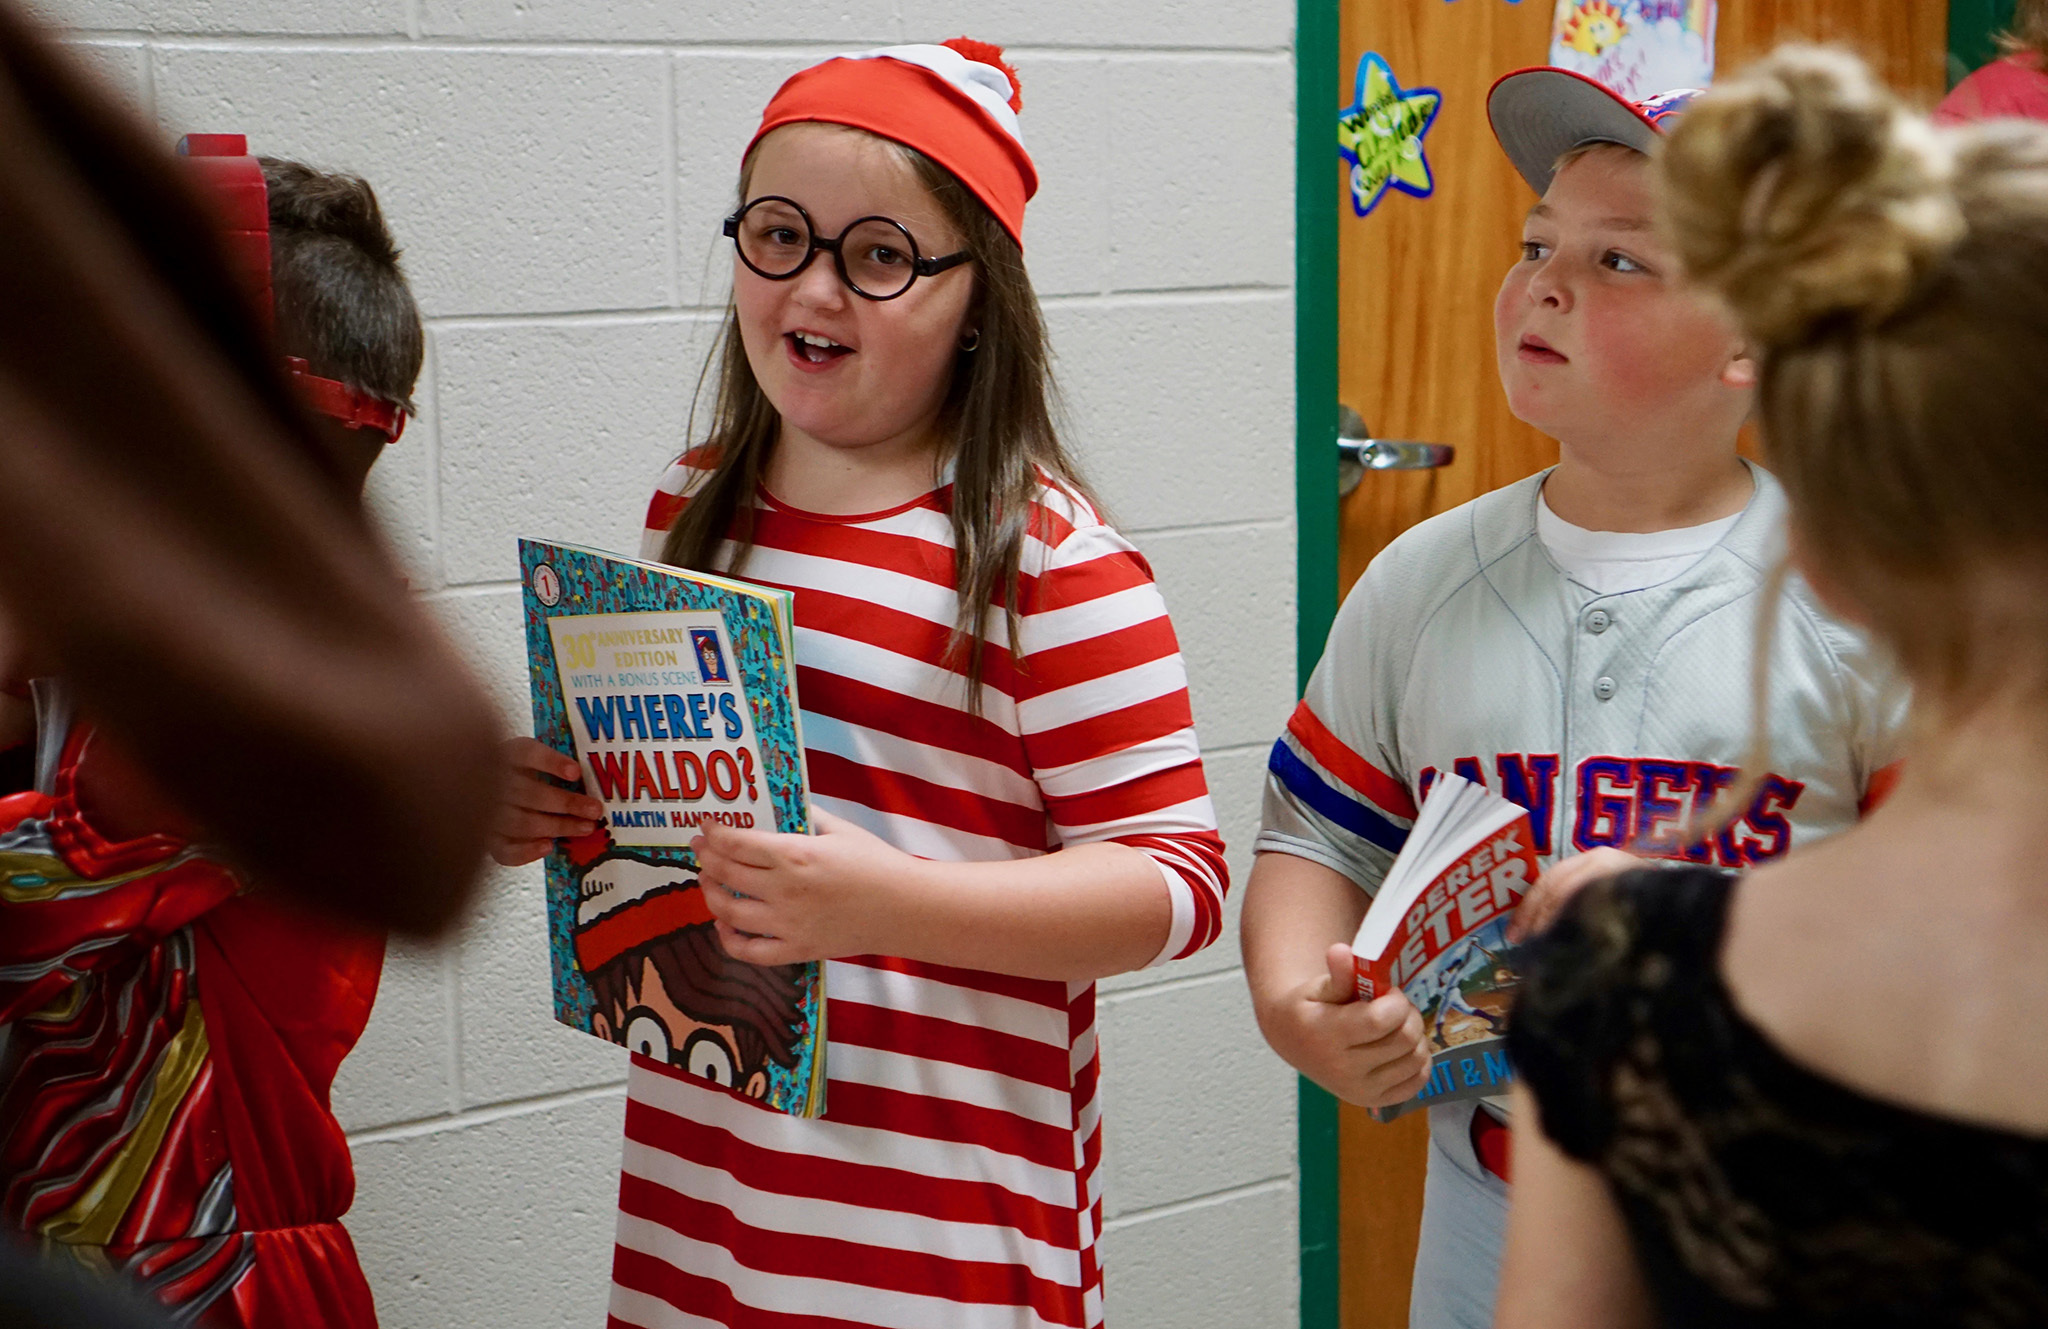 Student wearing a Waldo outfit with a Waldo book